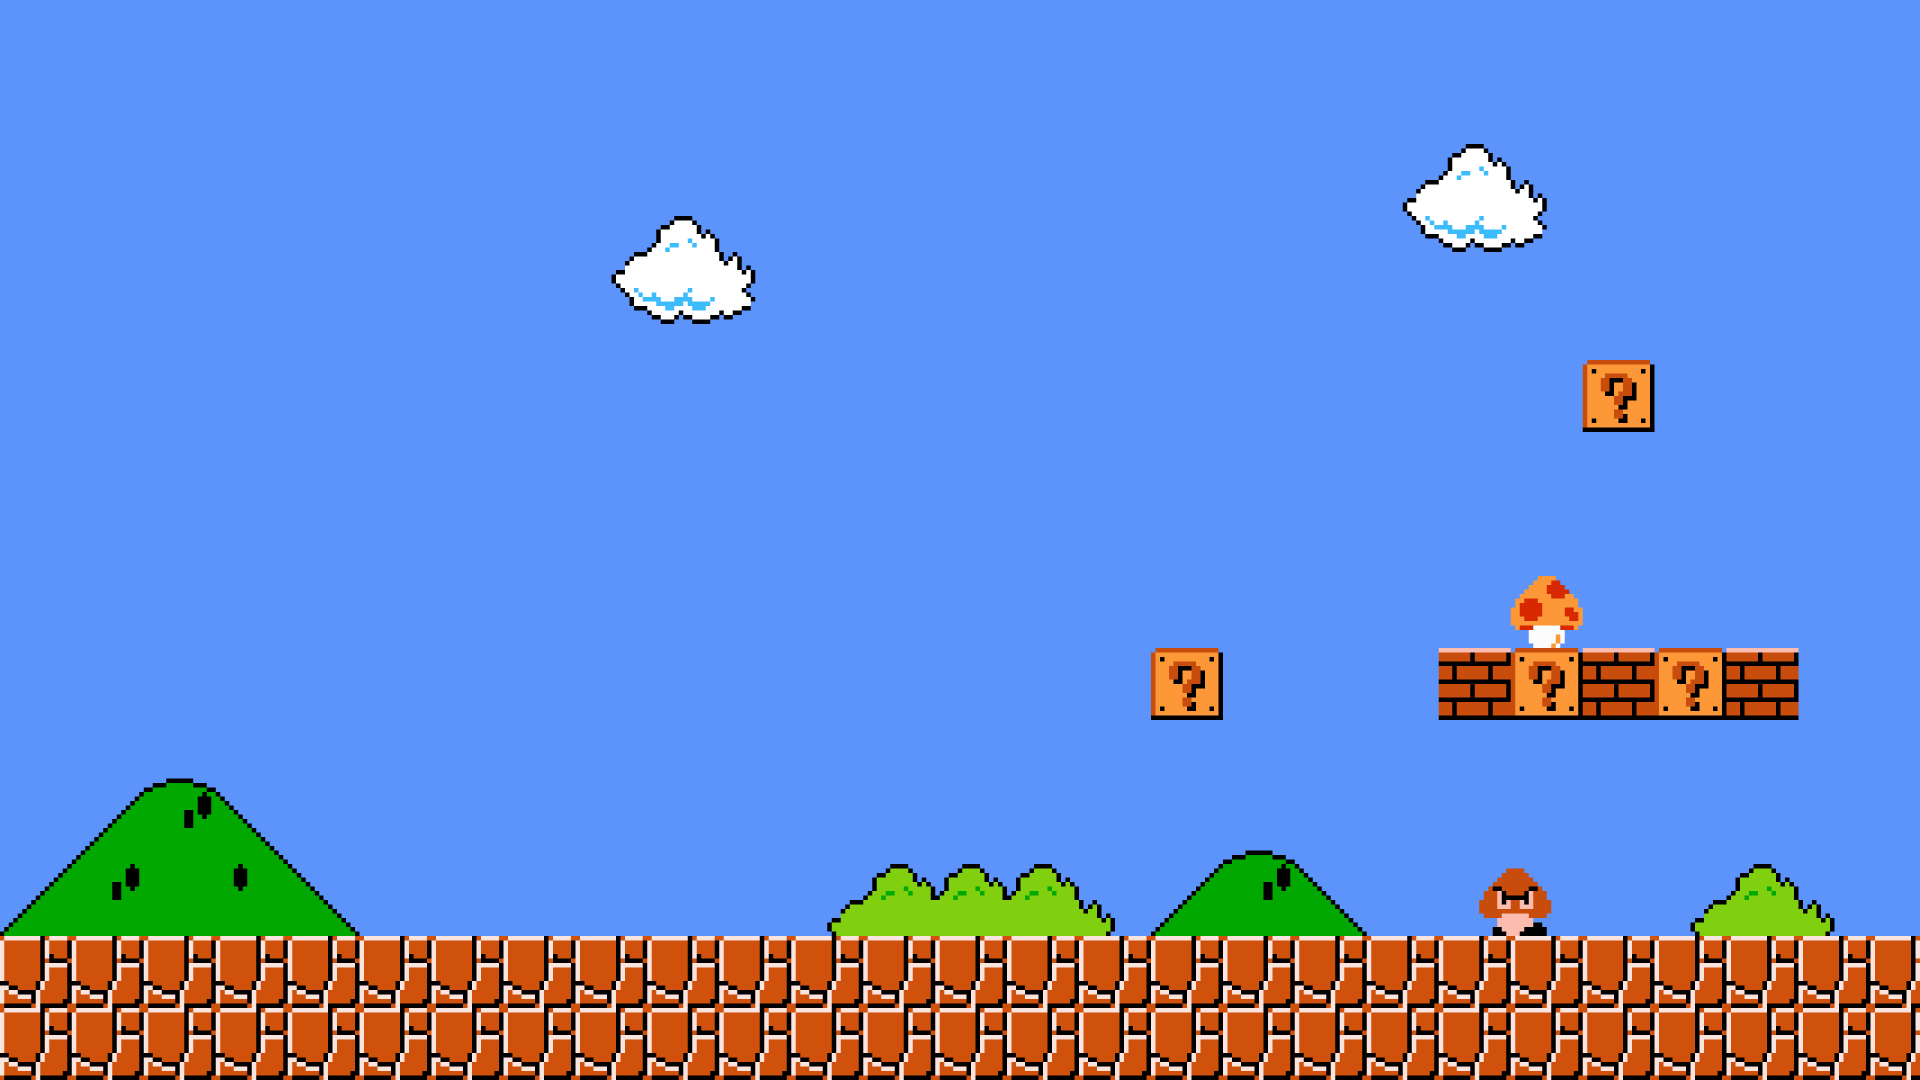 Papel Parede Mario ~ Classic Super Mario Wallpaper 8k Ultra HD Papel de Parede and Planos de Fundo 7680×4320 ID